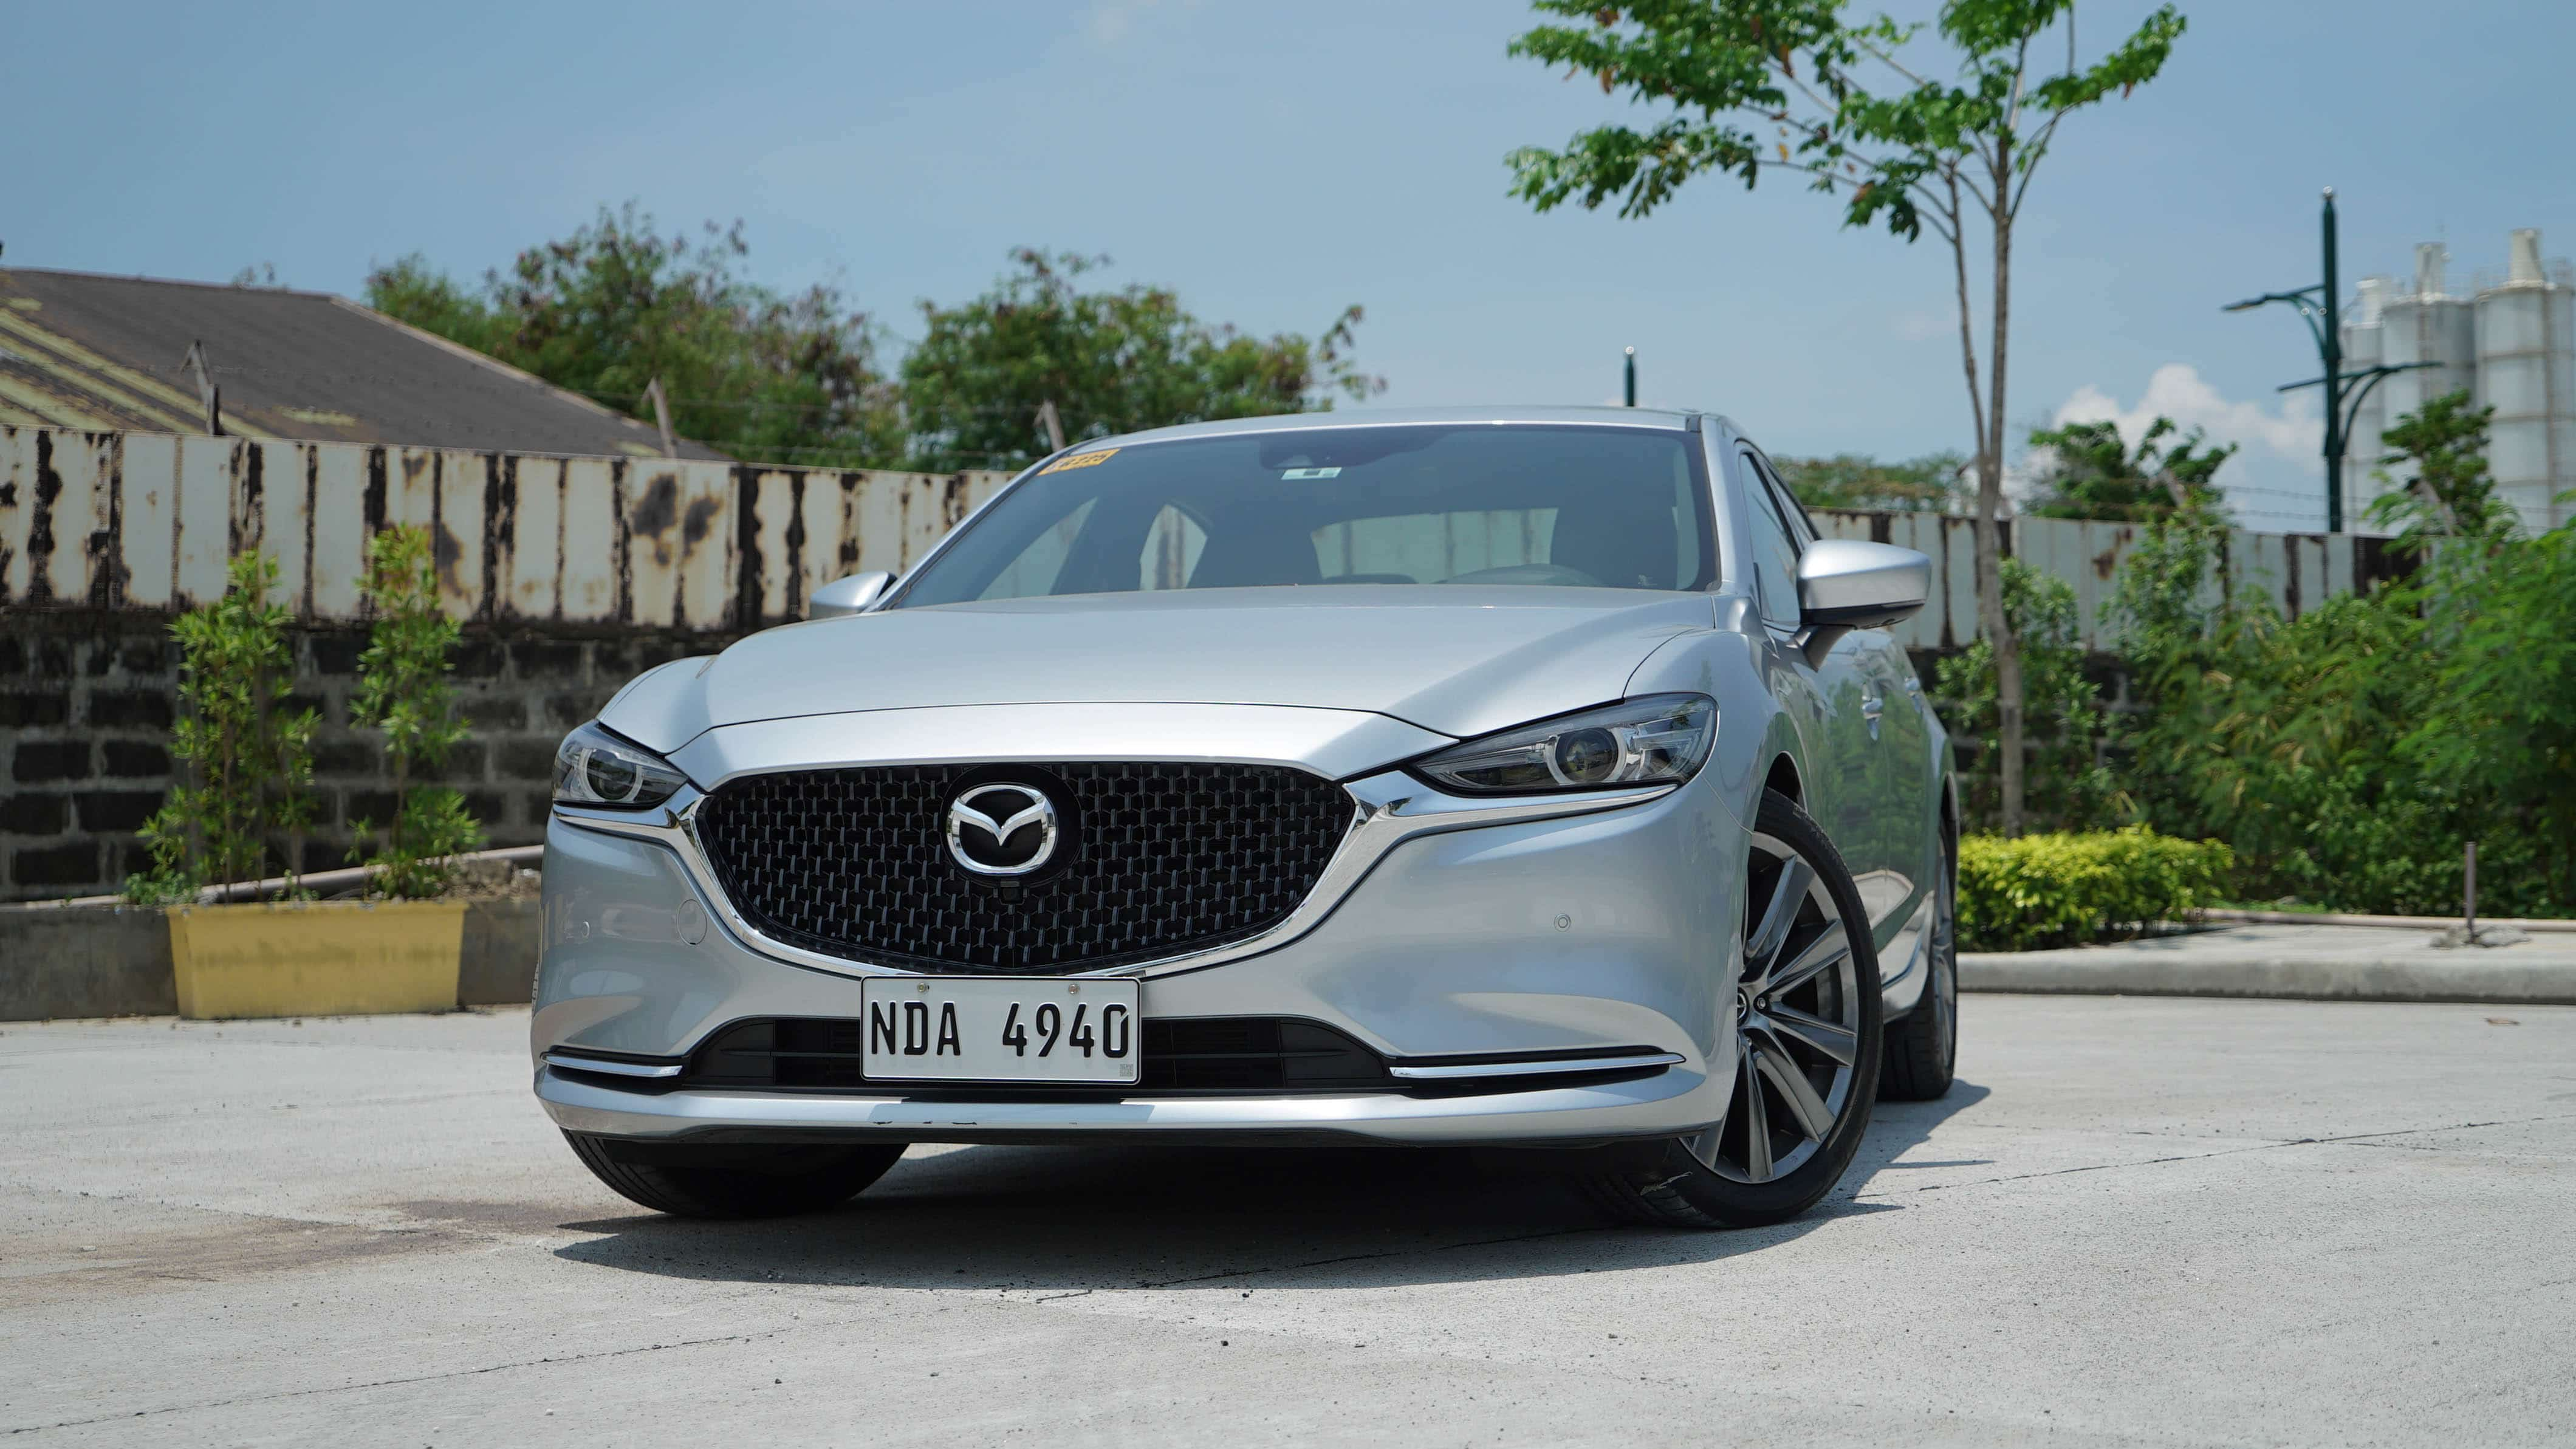 Kelebihan Kekurangan Mazda 6 Sedan Review